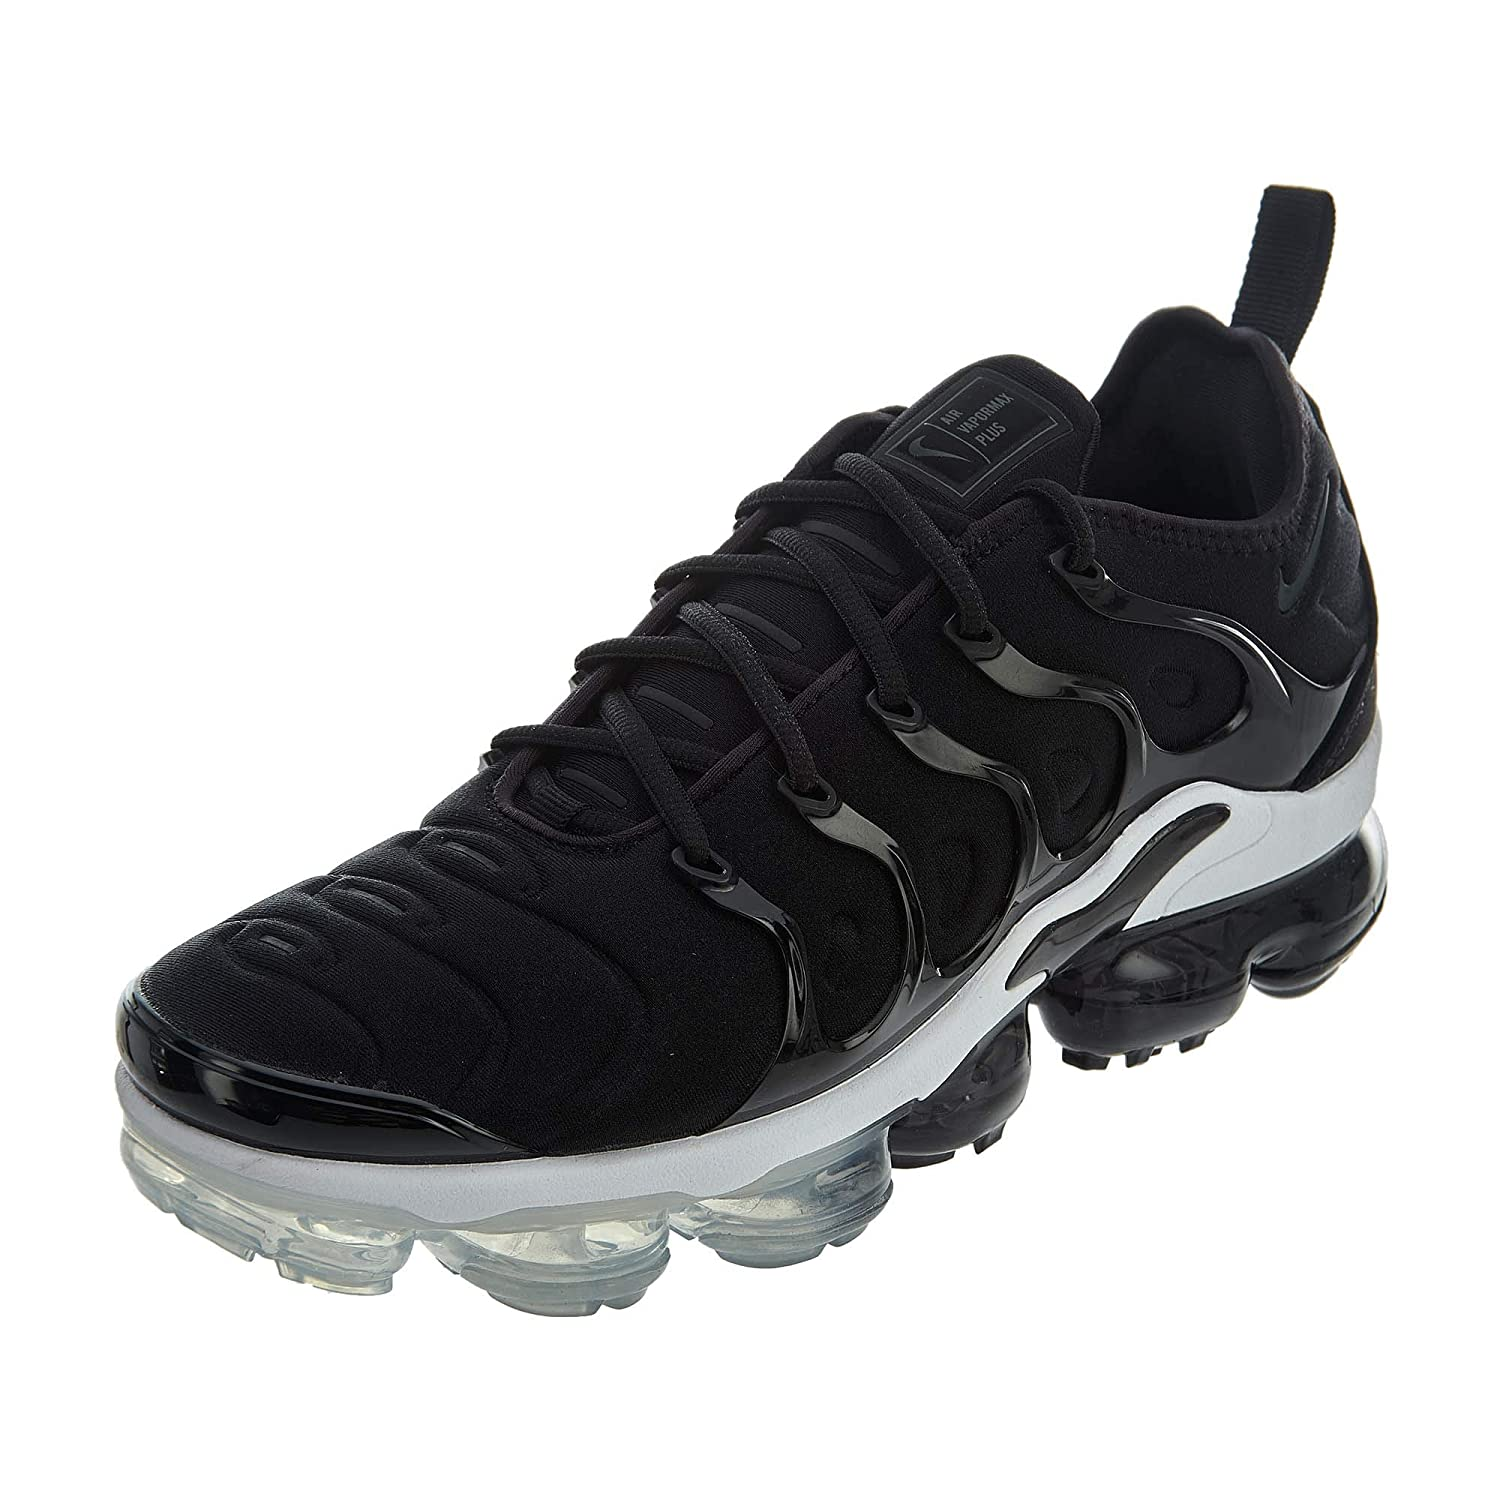 [NIKE - ナイキ] AIR VAPORMAX PLUS - 924453-010 - SIZE 9 (メンズ)